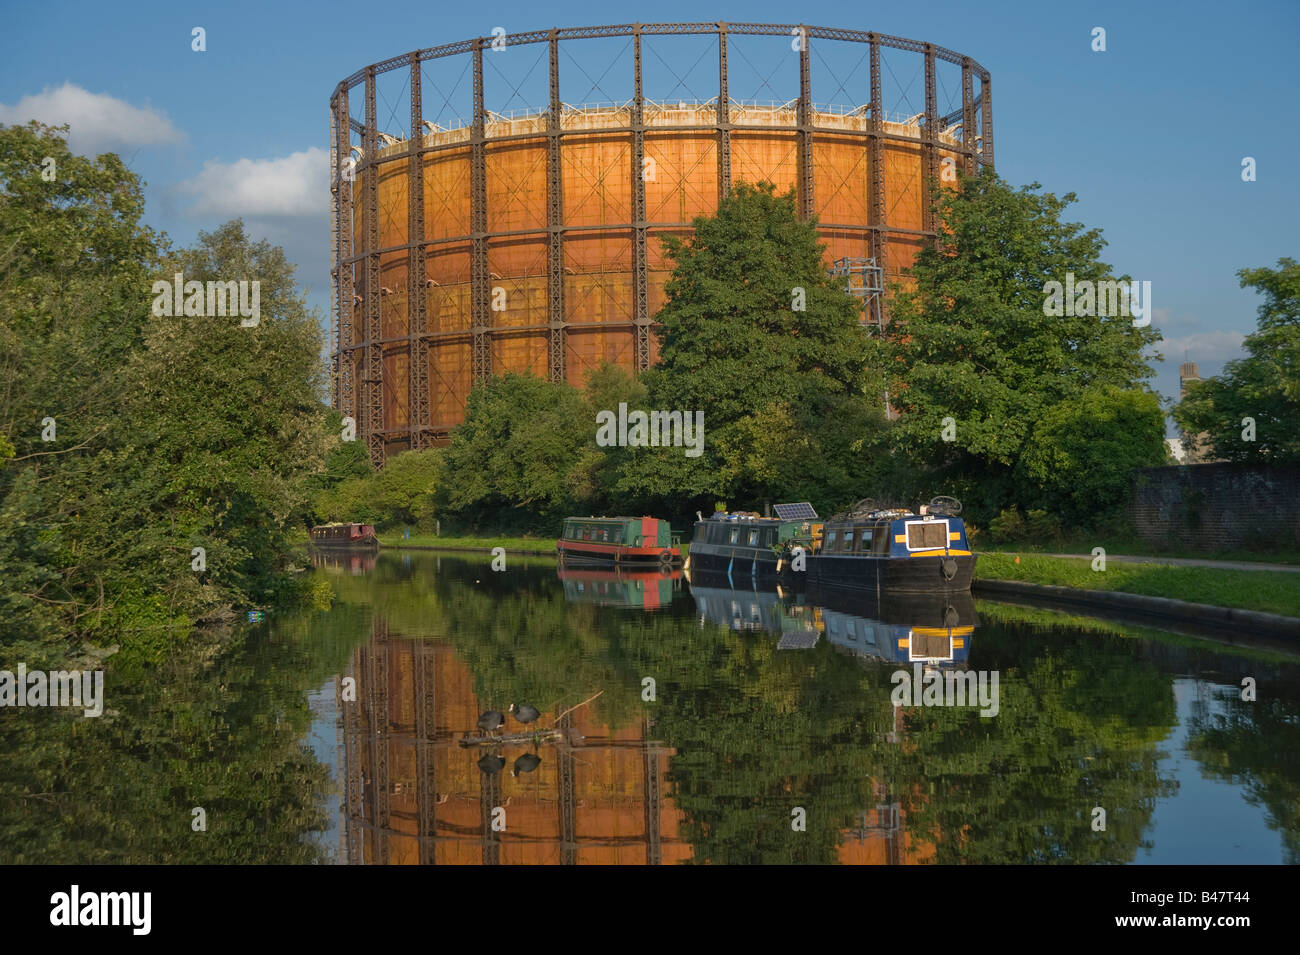 An old Gas tower grand Union canal Harlesden West London - Stock Image